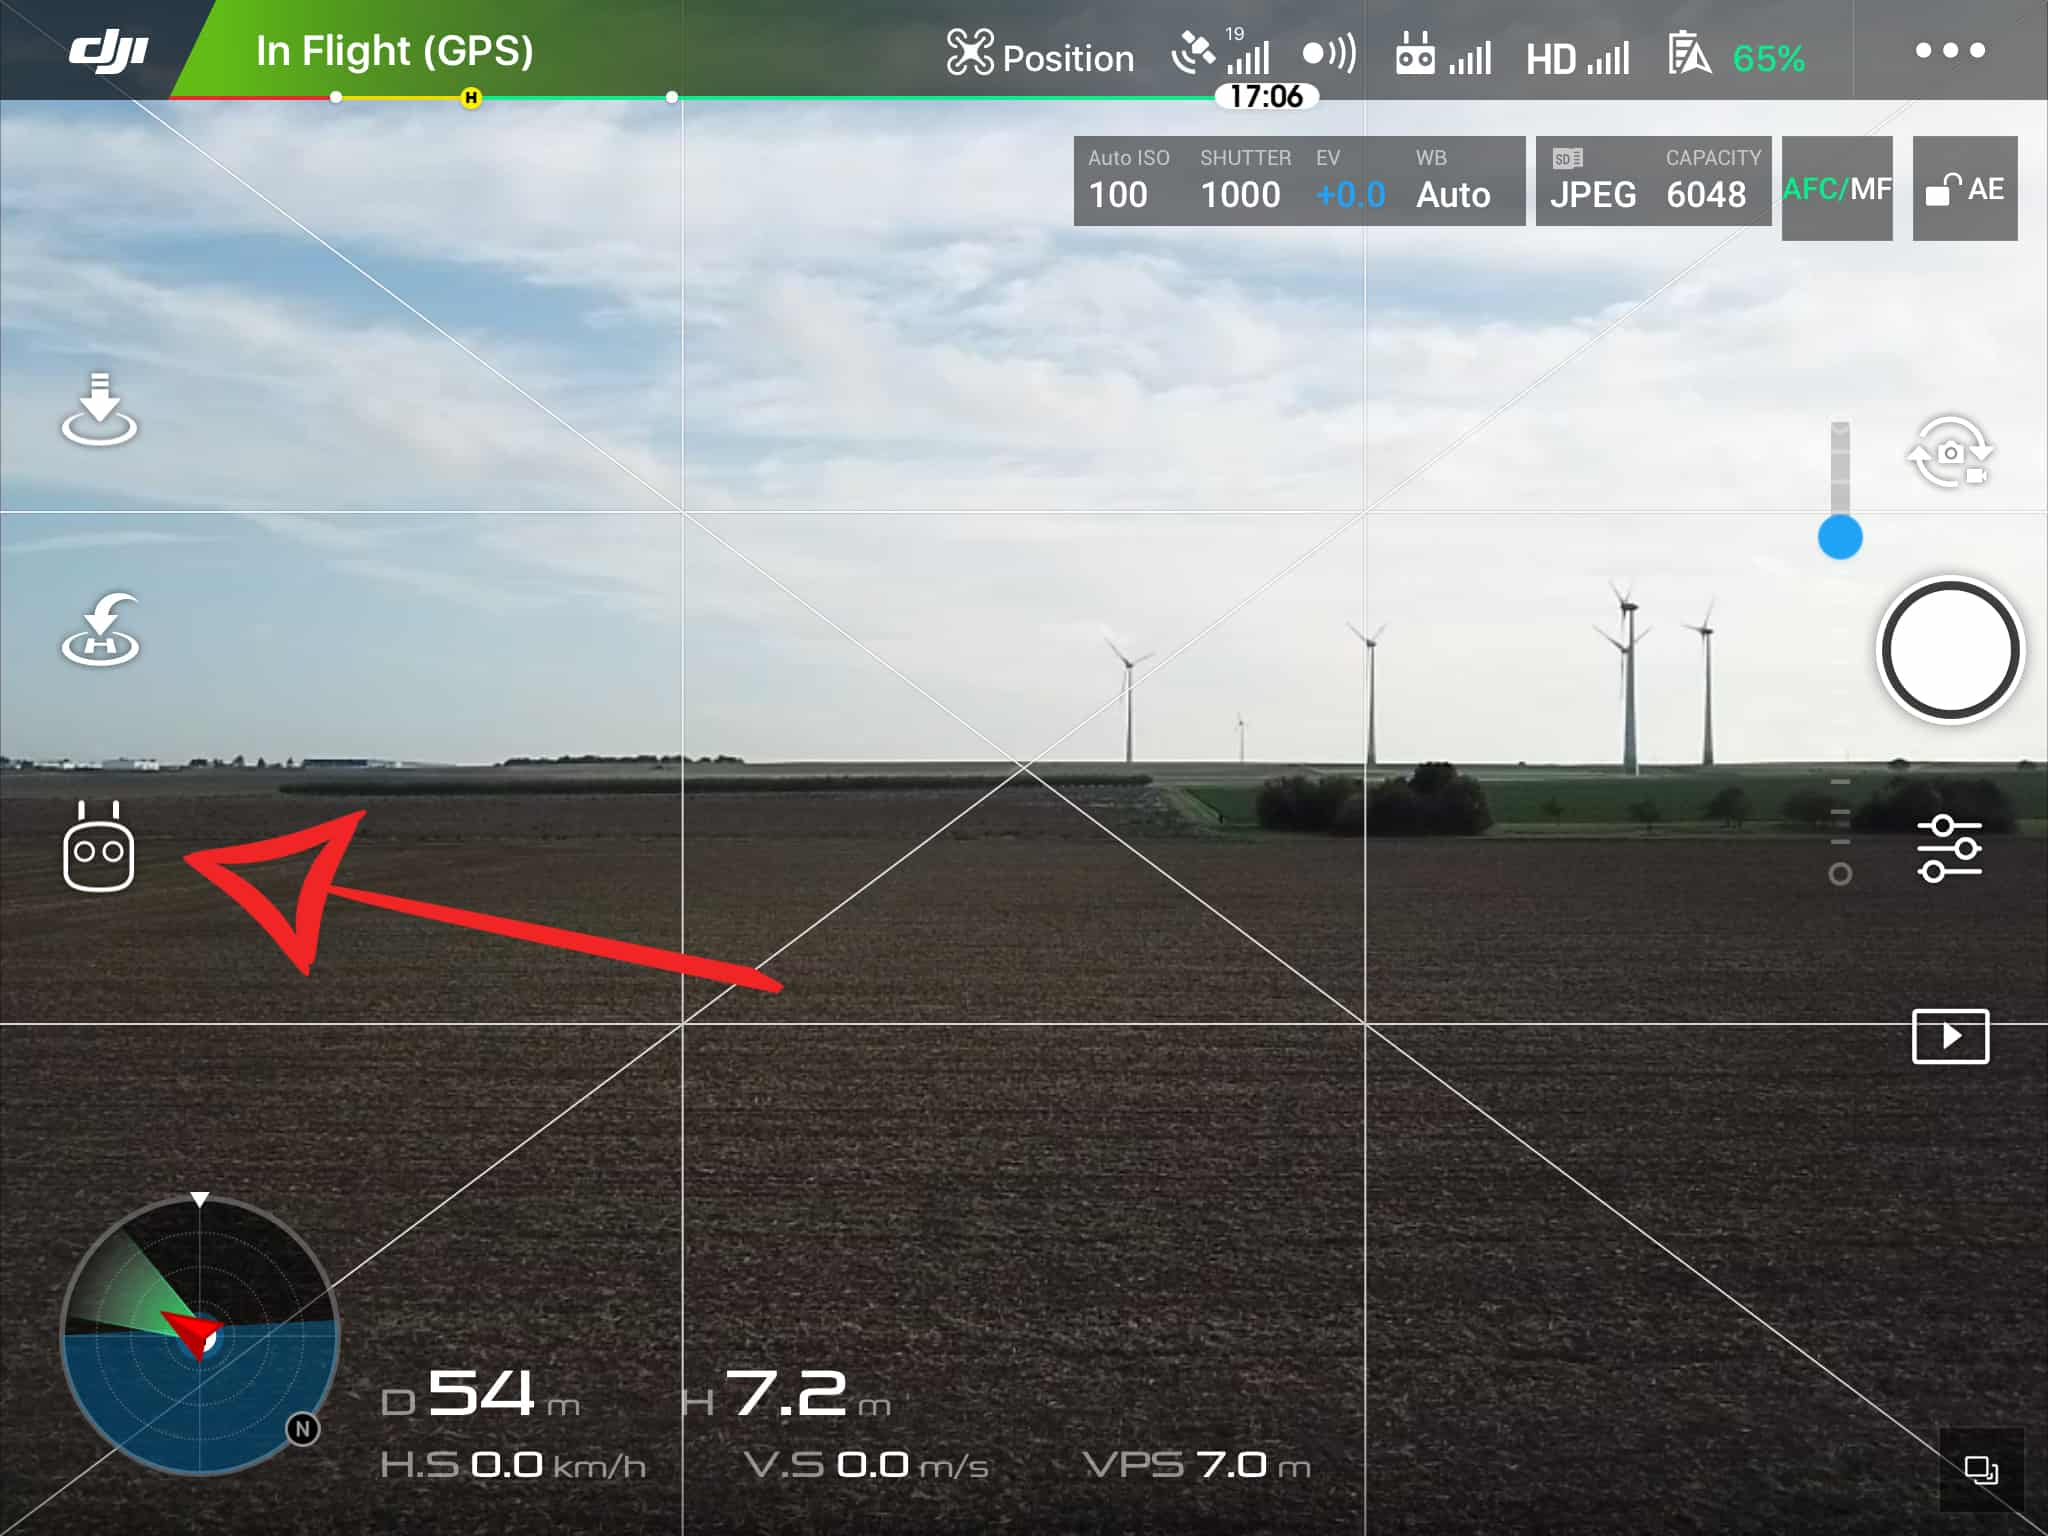 DJI Flight Modes Explained - The Top 10 Best Drones - 2019